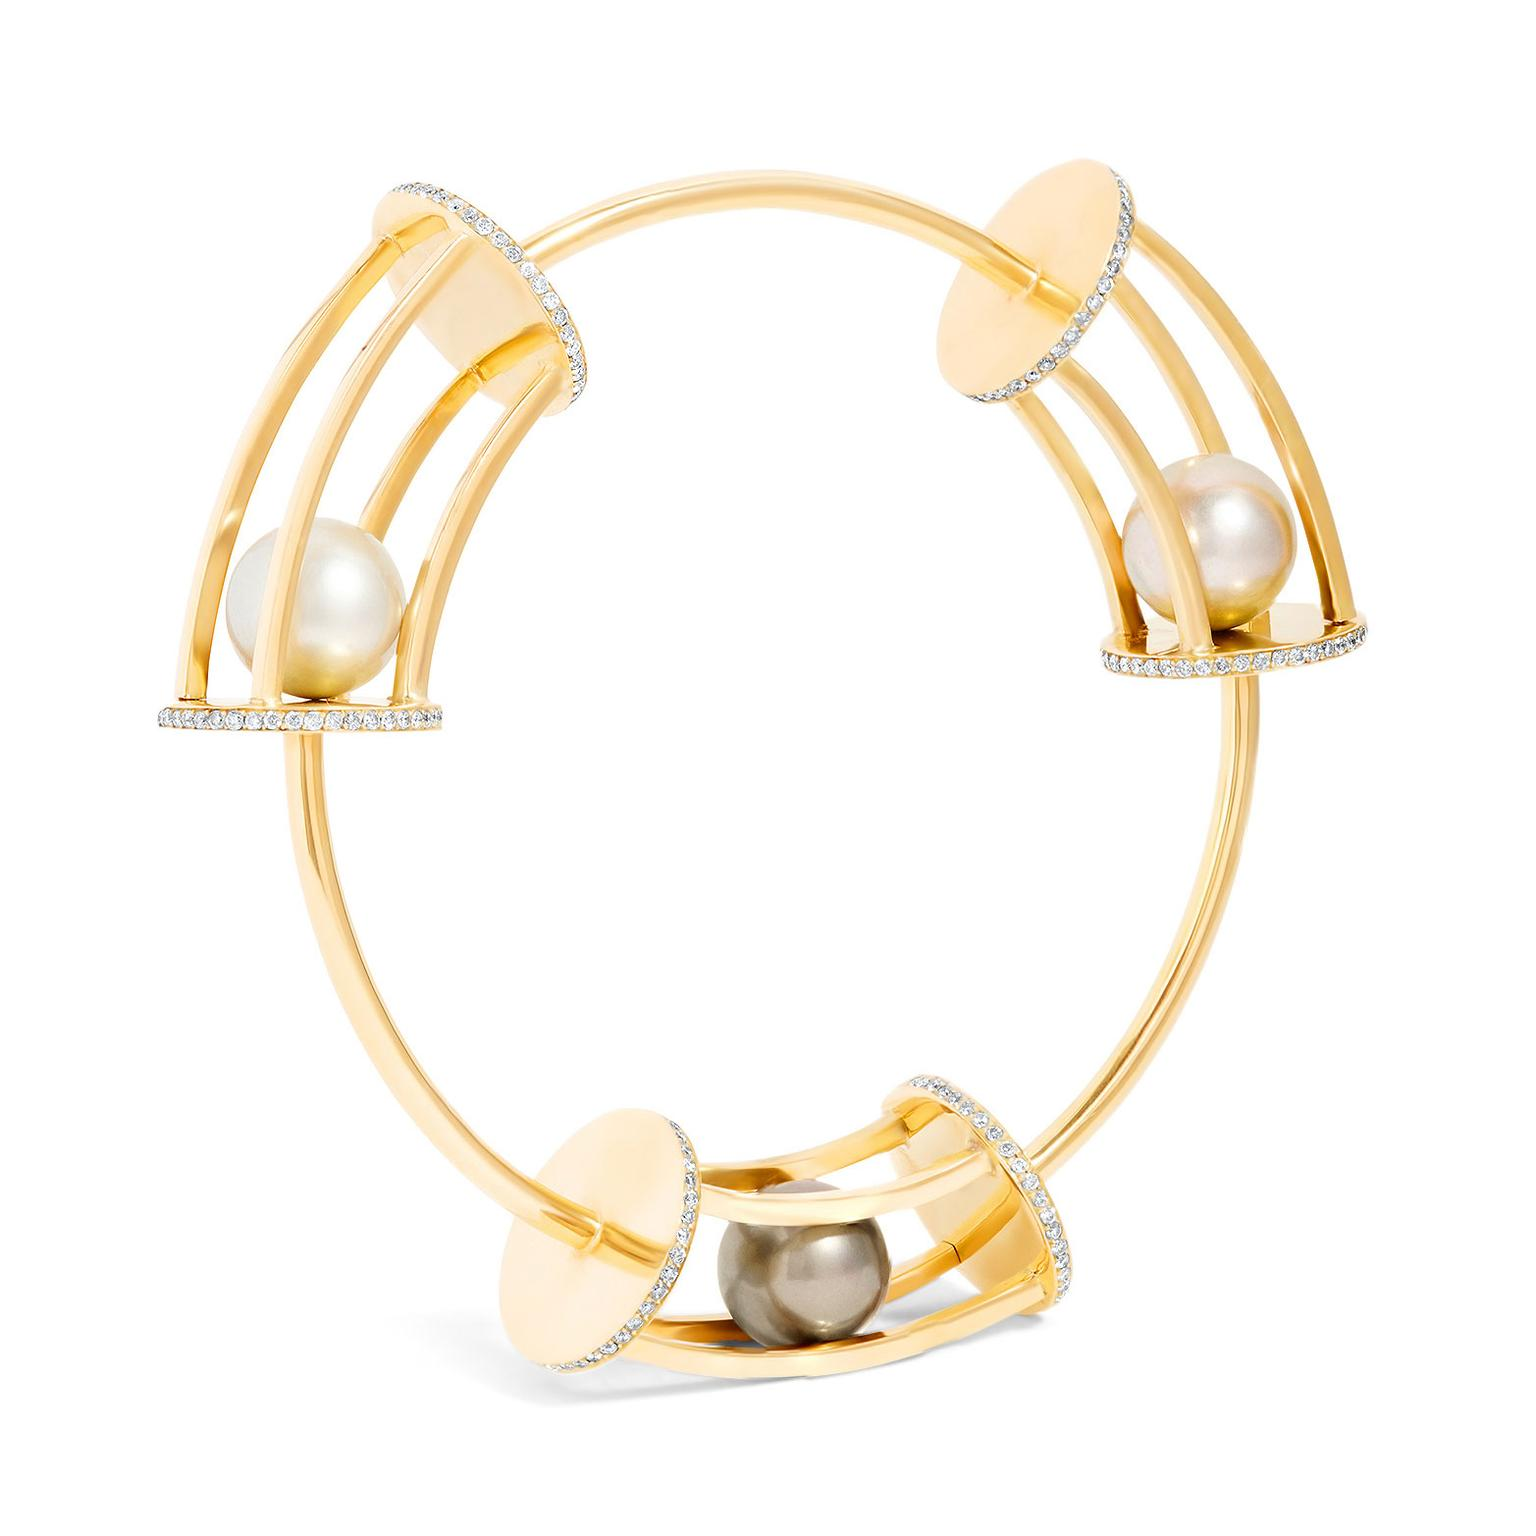 Yael Sonia Spinning Trio bangle